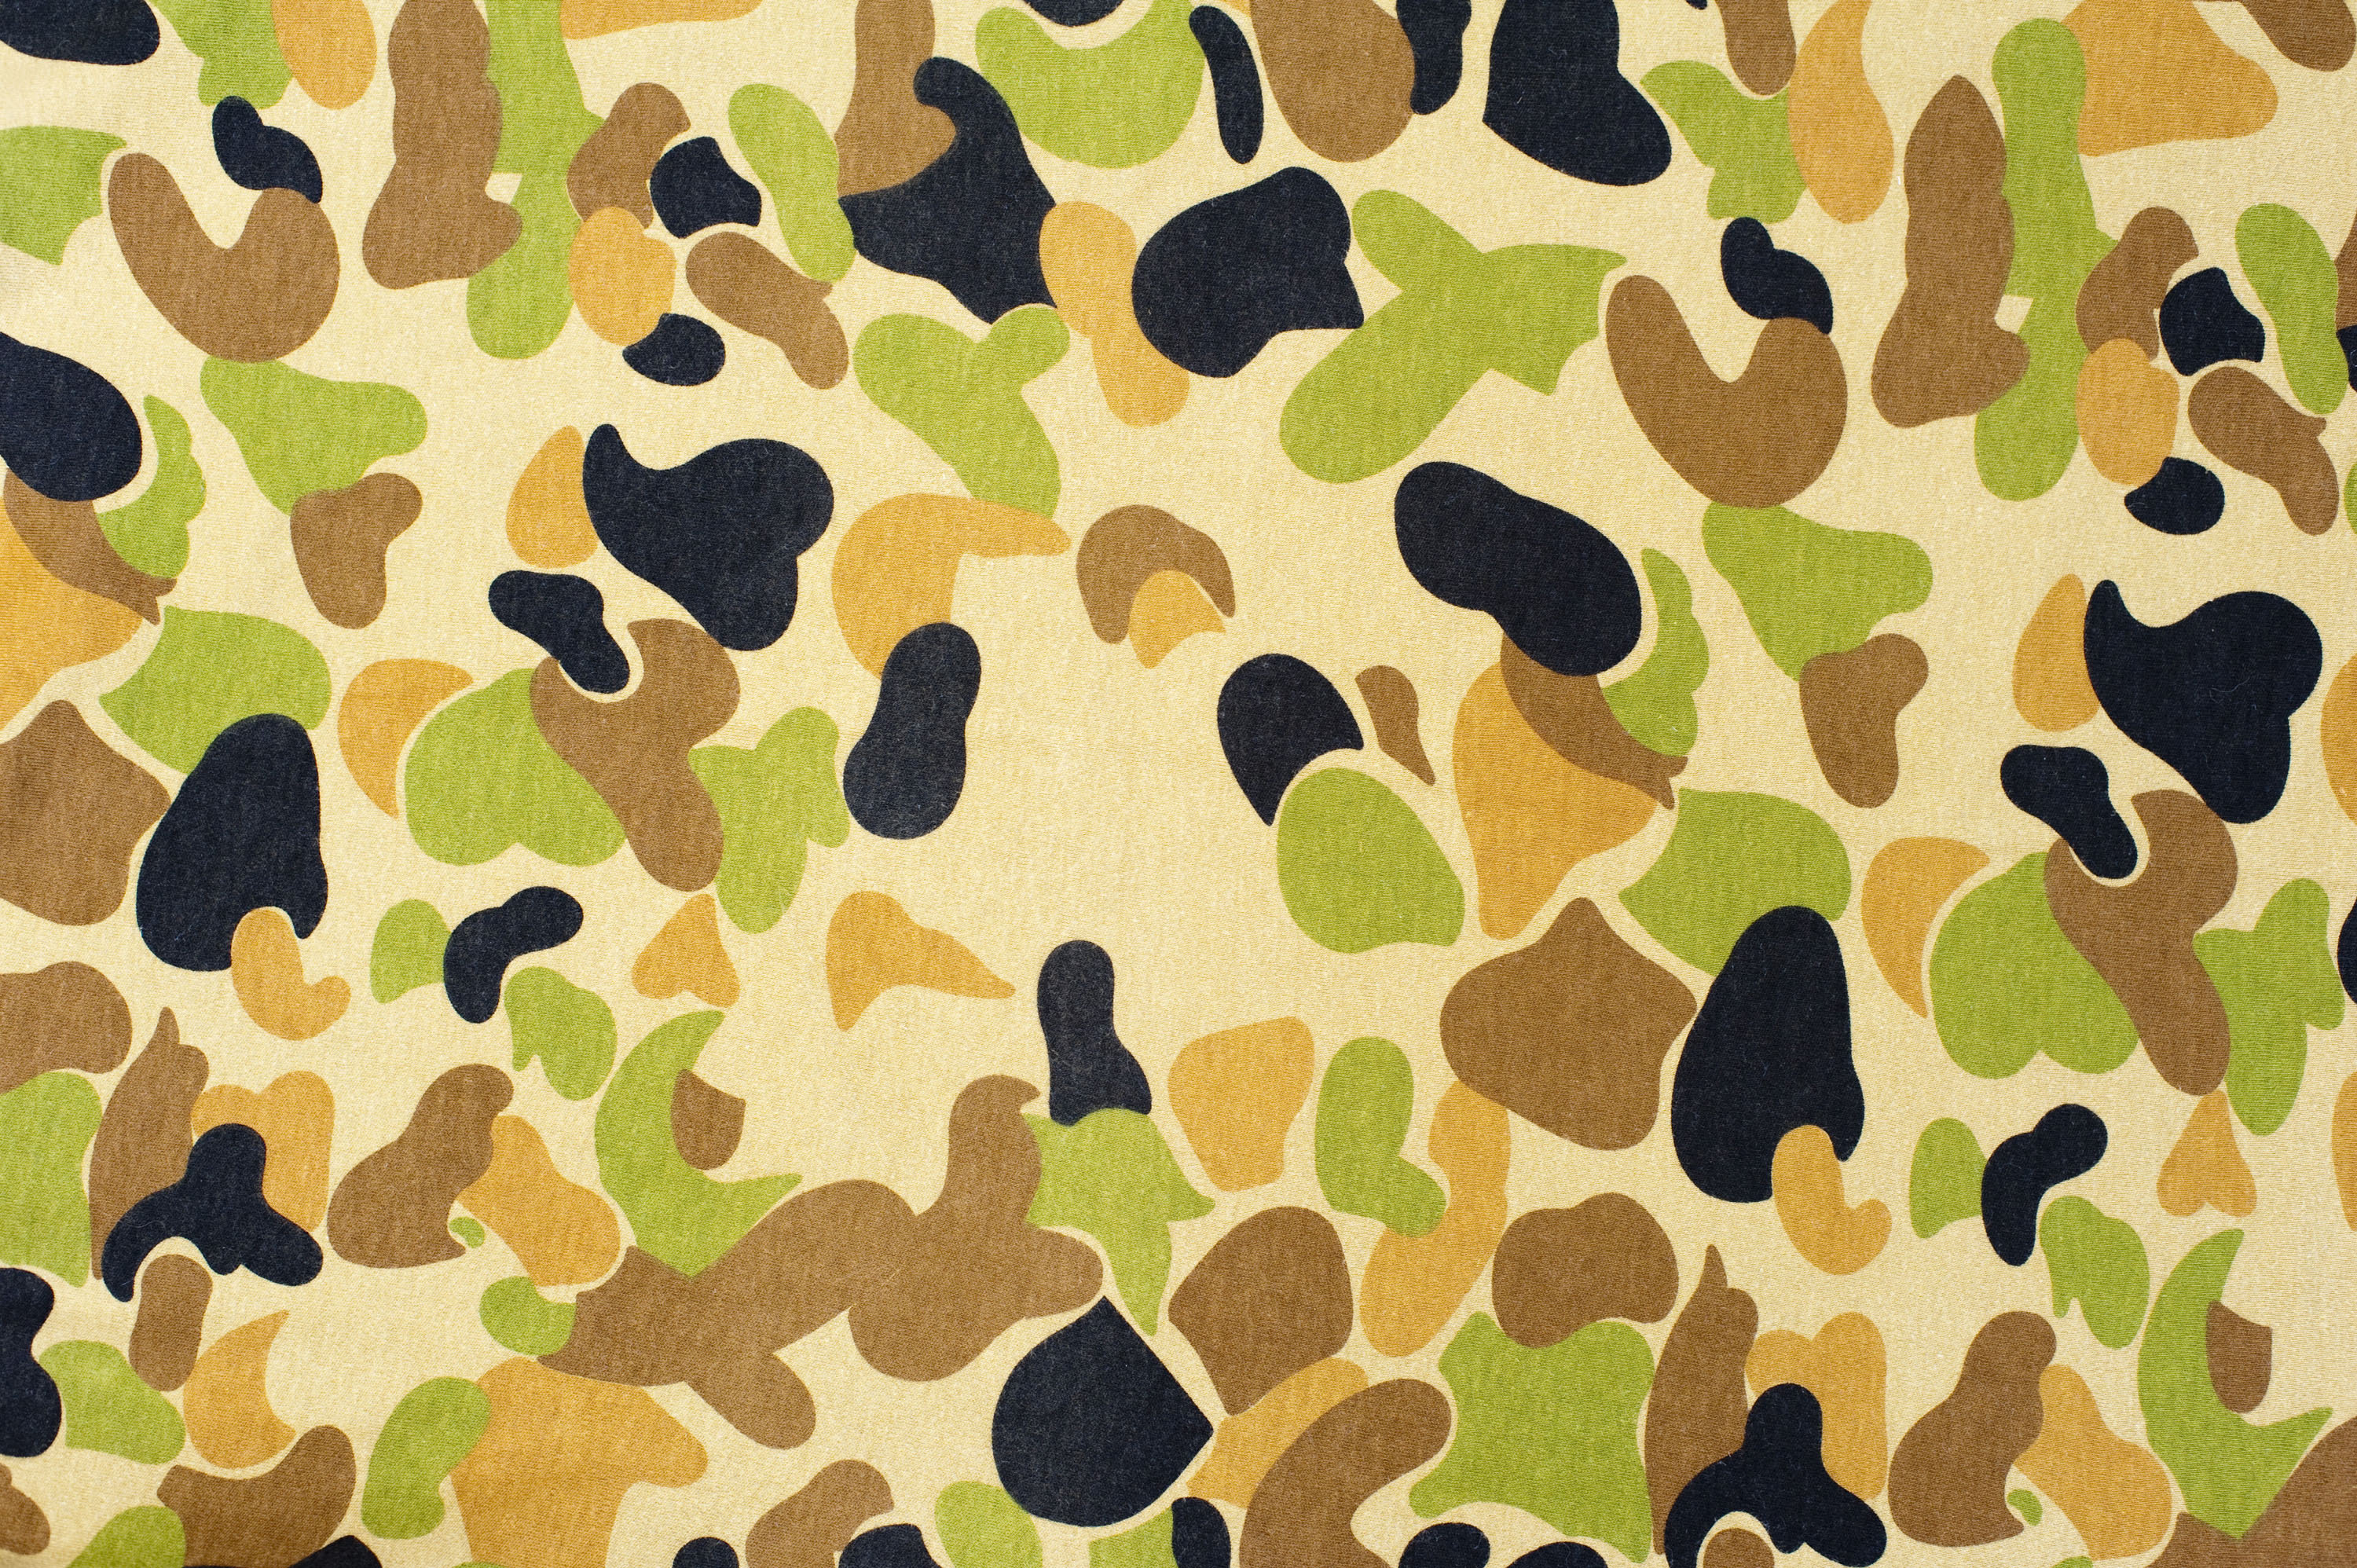 Free Stock Photo 3901-camouflage pattern | freeimageslive